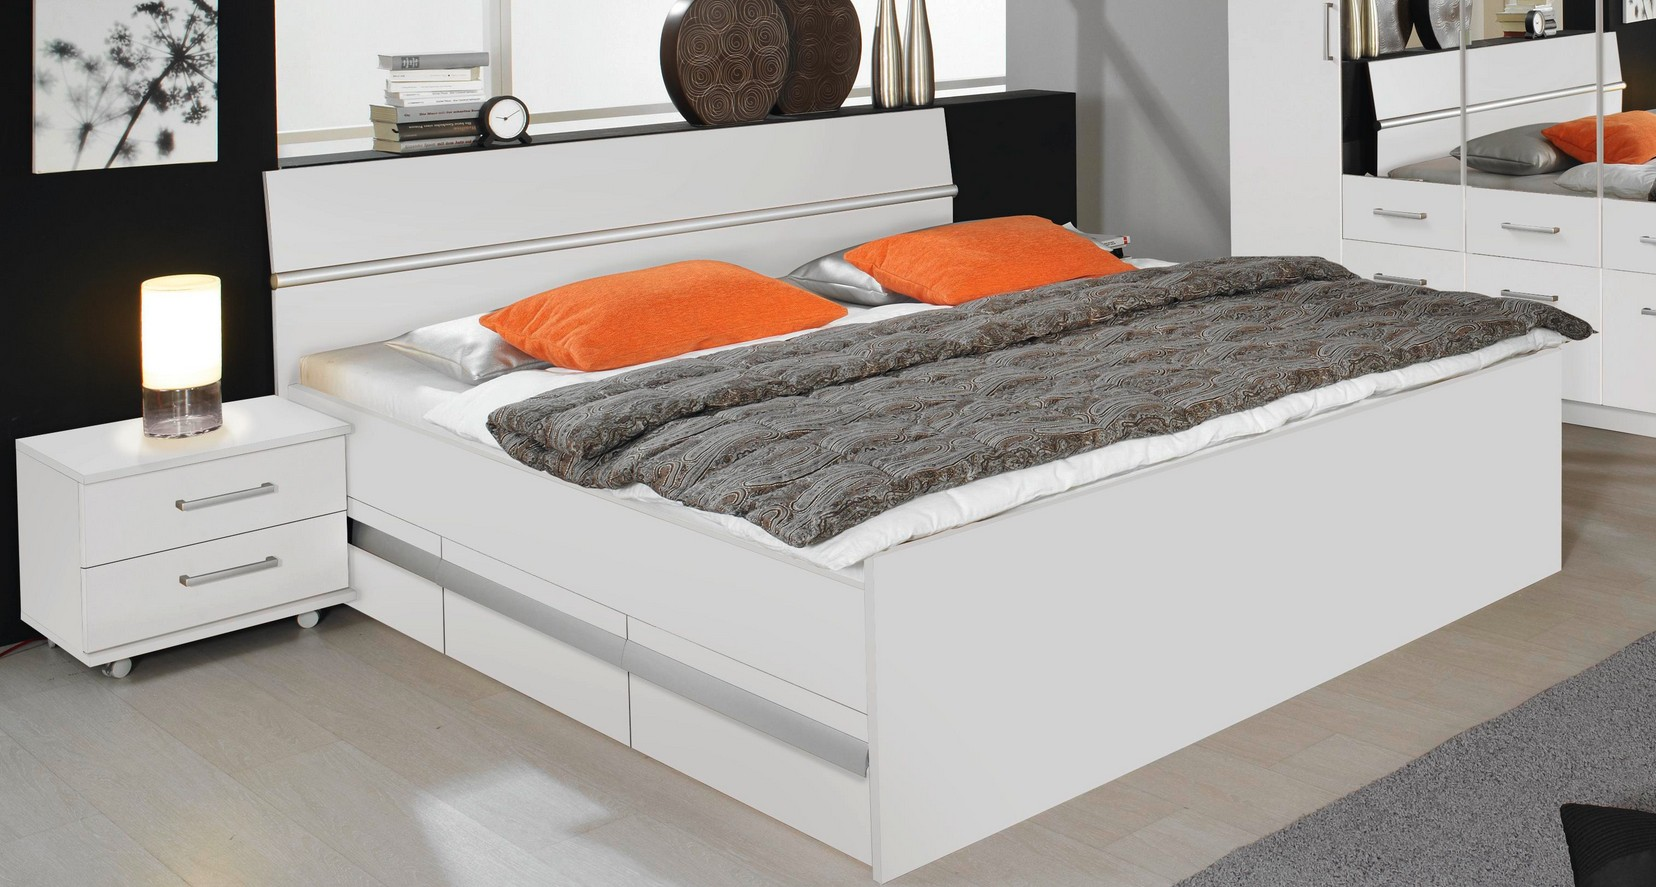 rauch packs apulien kompaktbett mit 2x3 erset. Black Bedroom Furniture Sets. Home Design Ideas